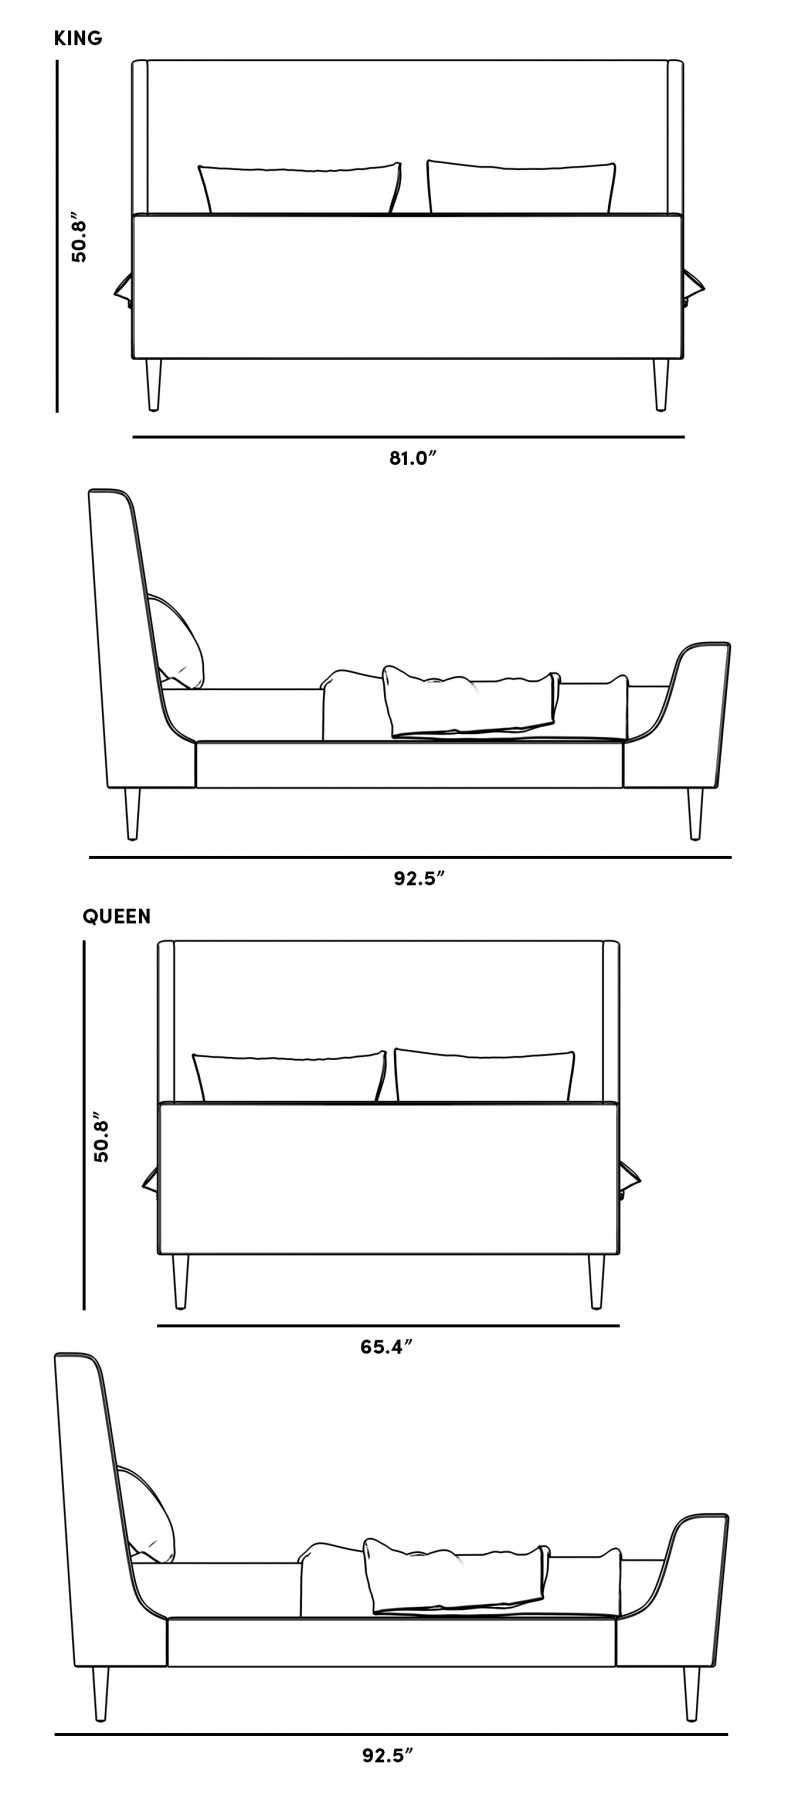 Dimensions for Ayda Bed